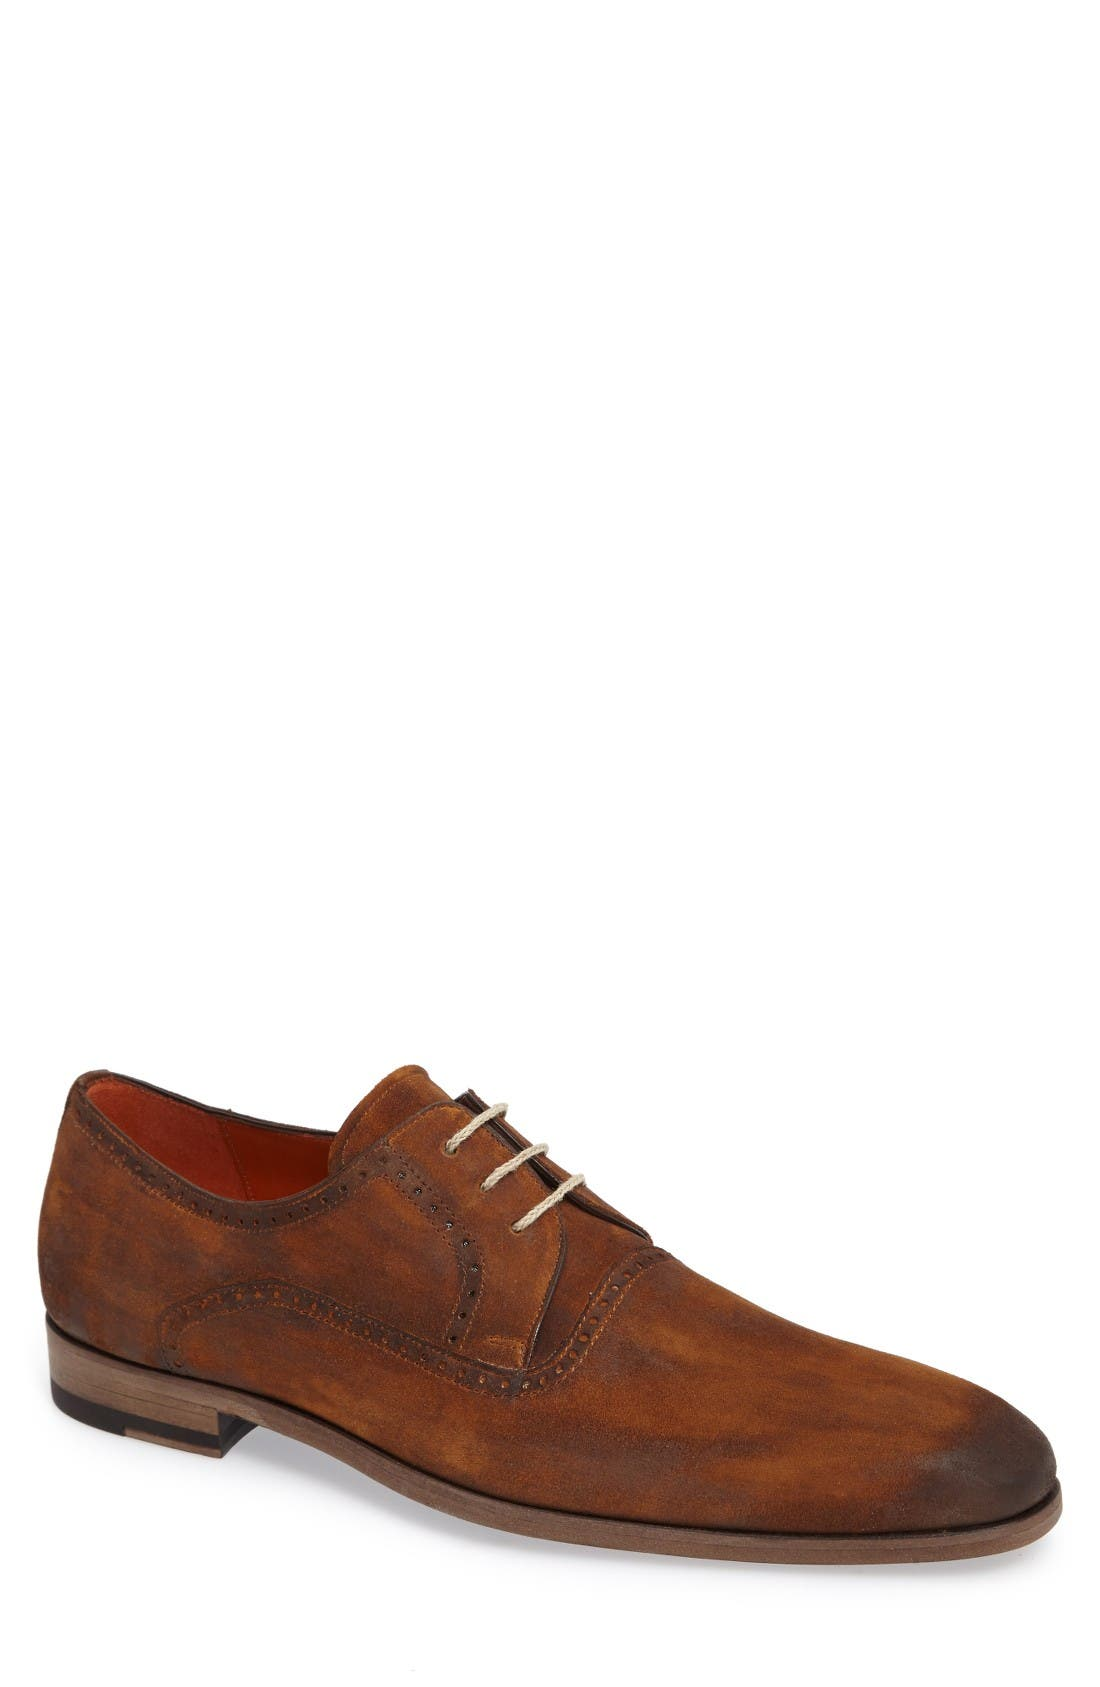 Euclid Plain Toe Derby,                         Main,                         color, Tan Suede